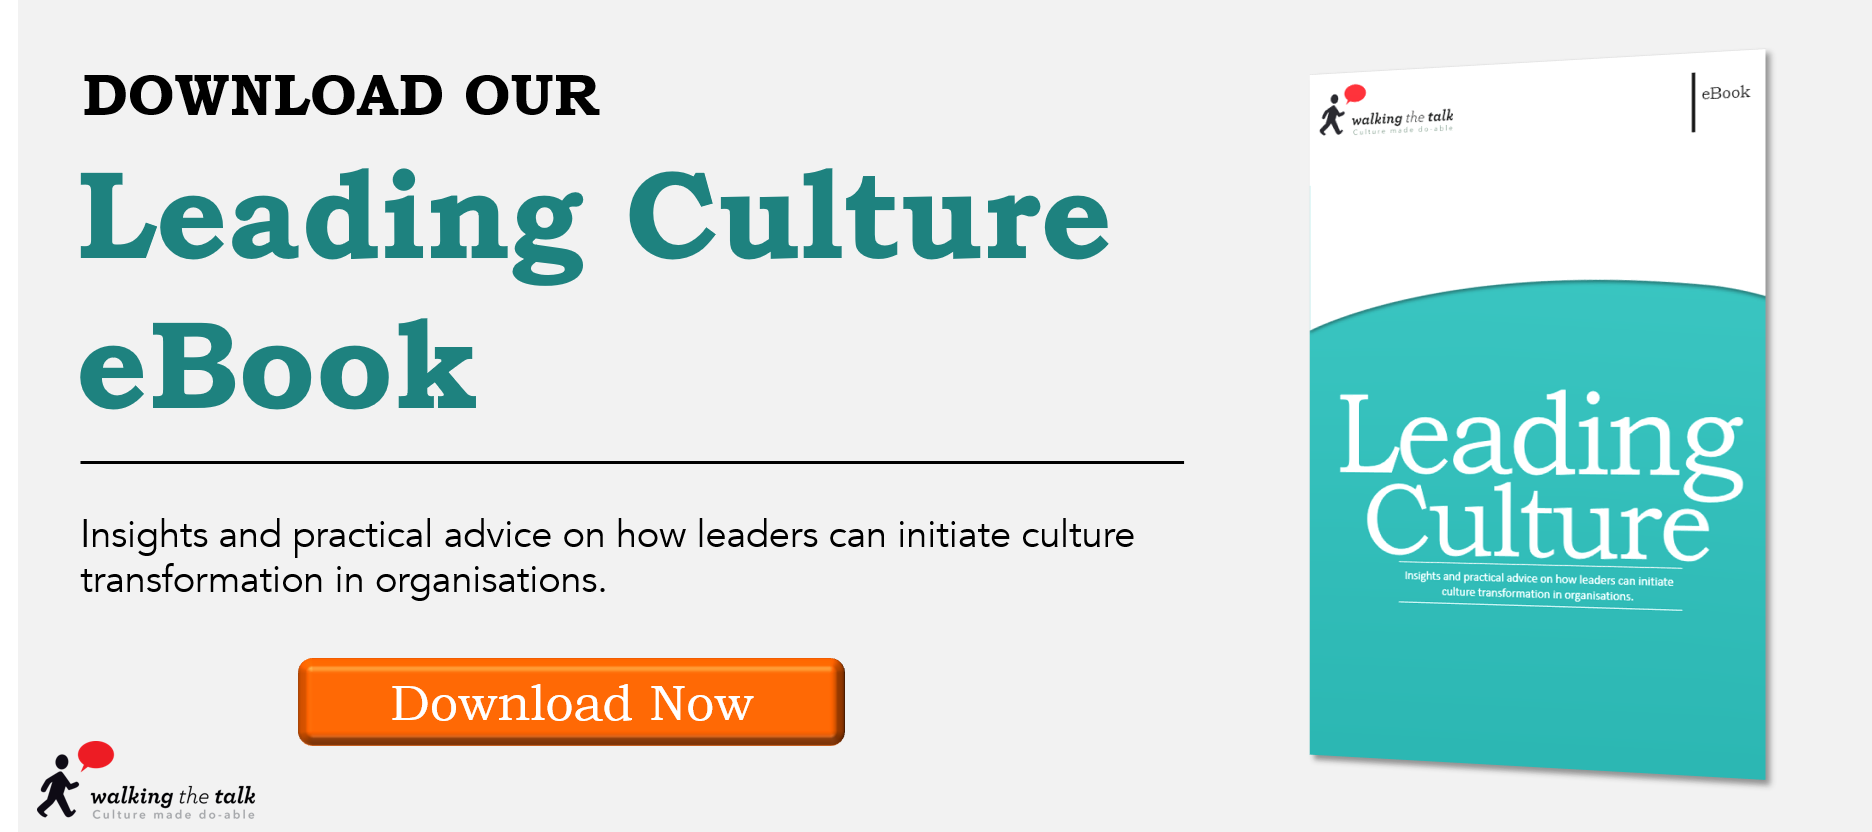 Leading Culture eBook.png